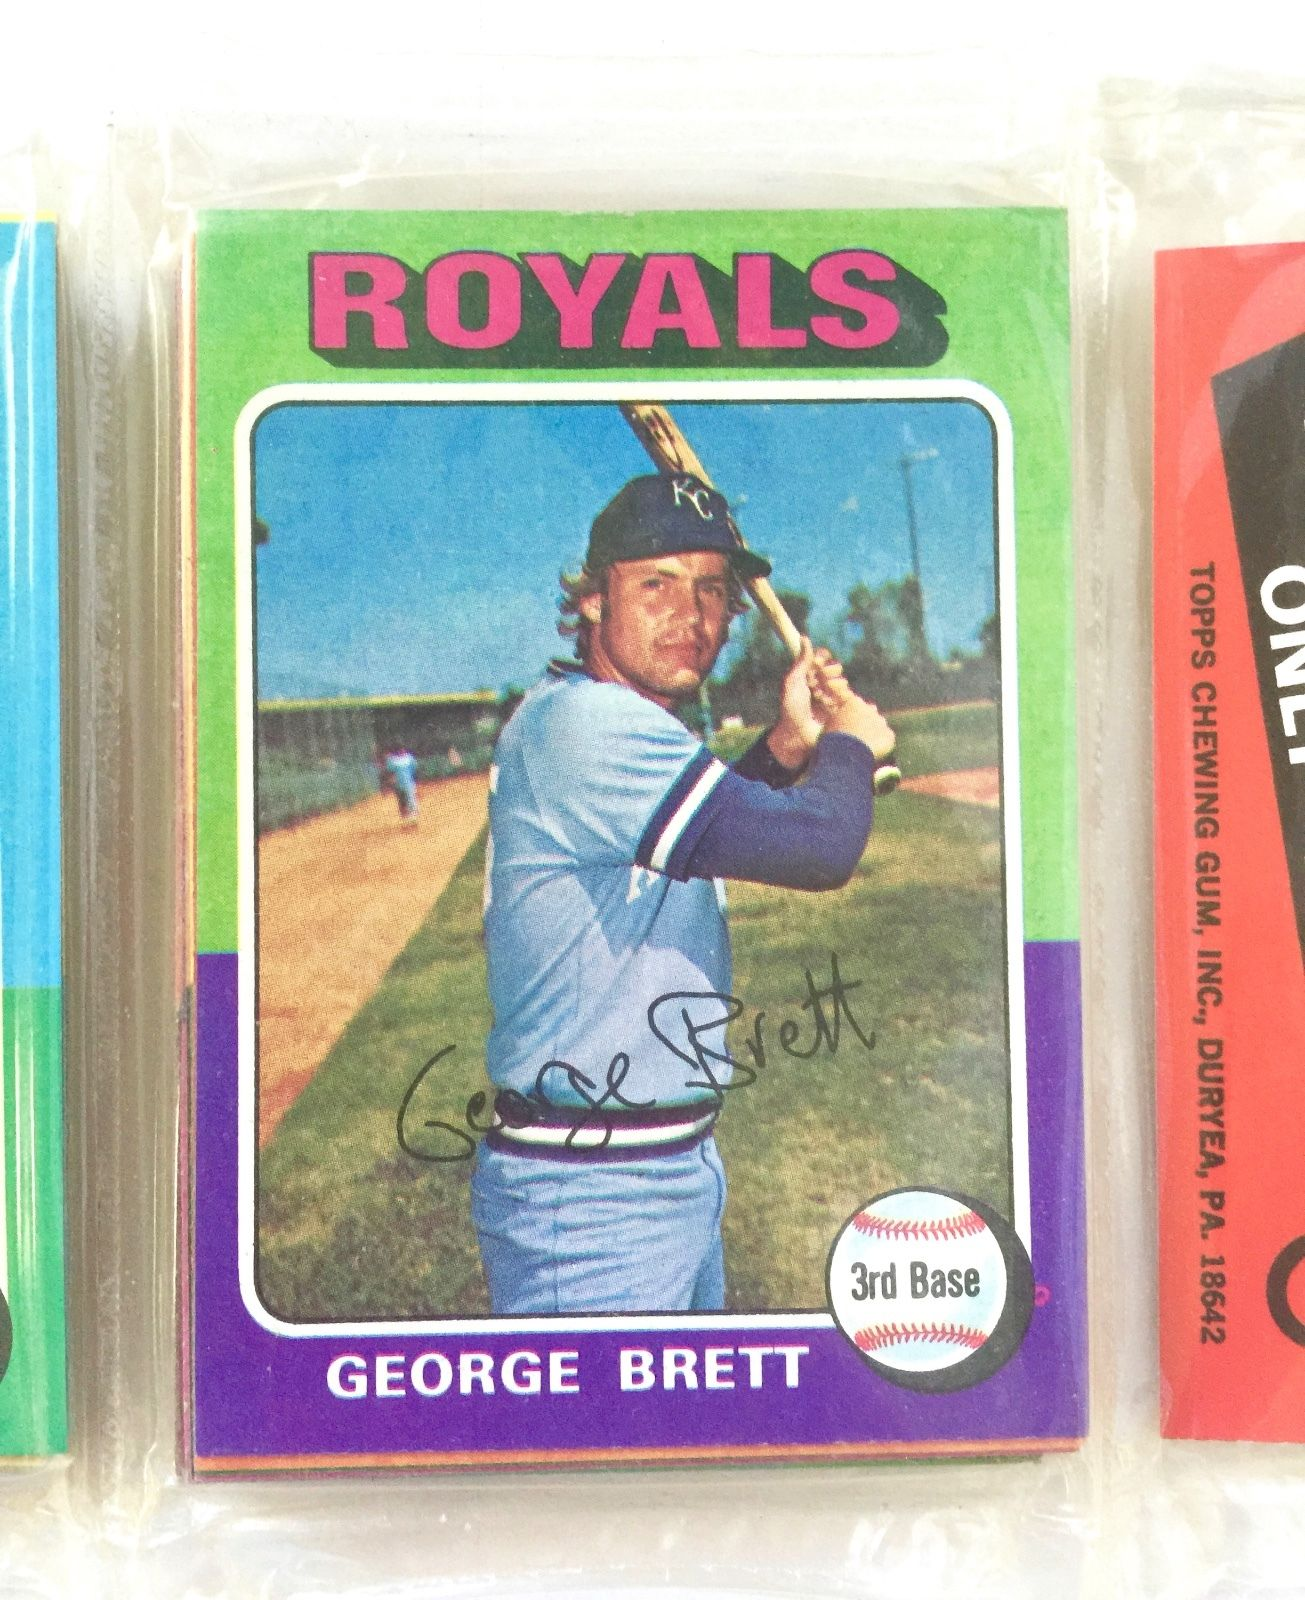 1975 TOPPS UNOPENED RACK PACK WITH GEORGE BRETT ROOKIE CARD  CHARITY AUCTION